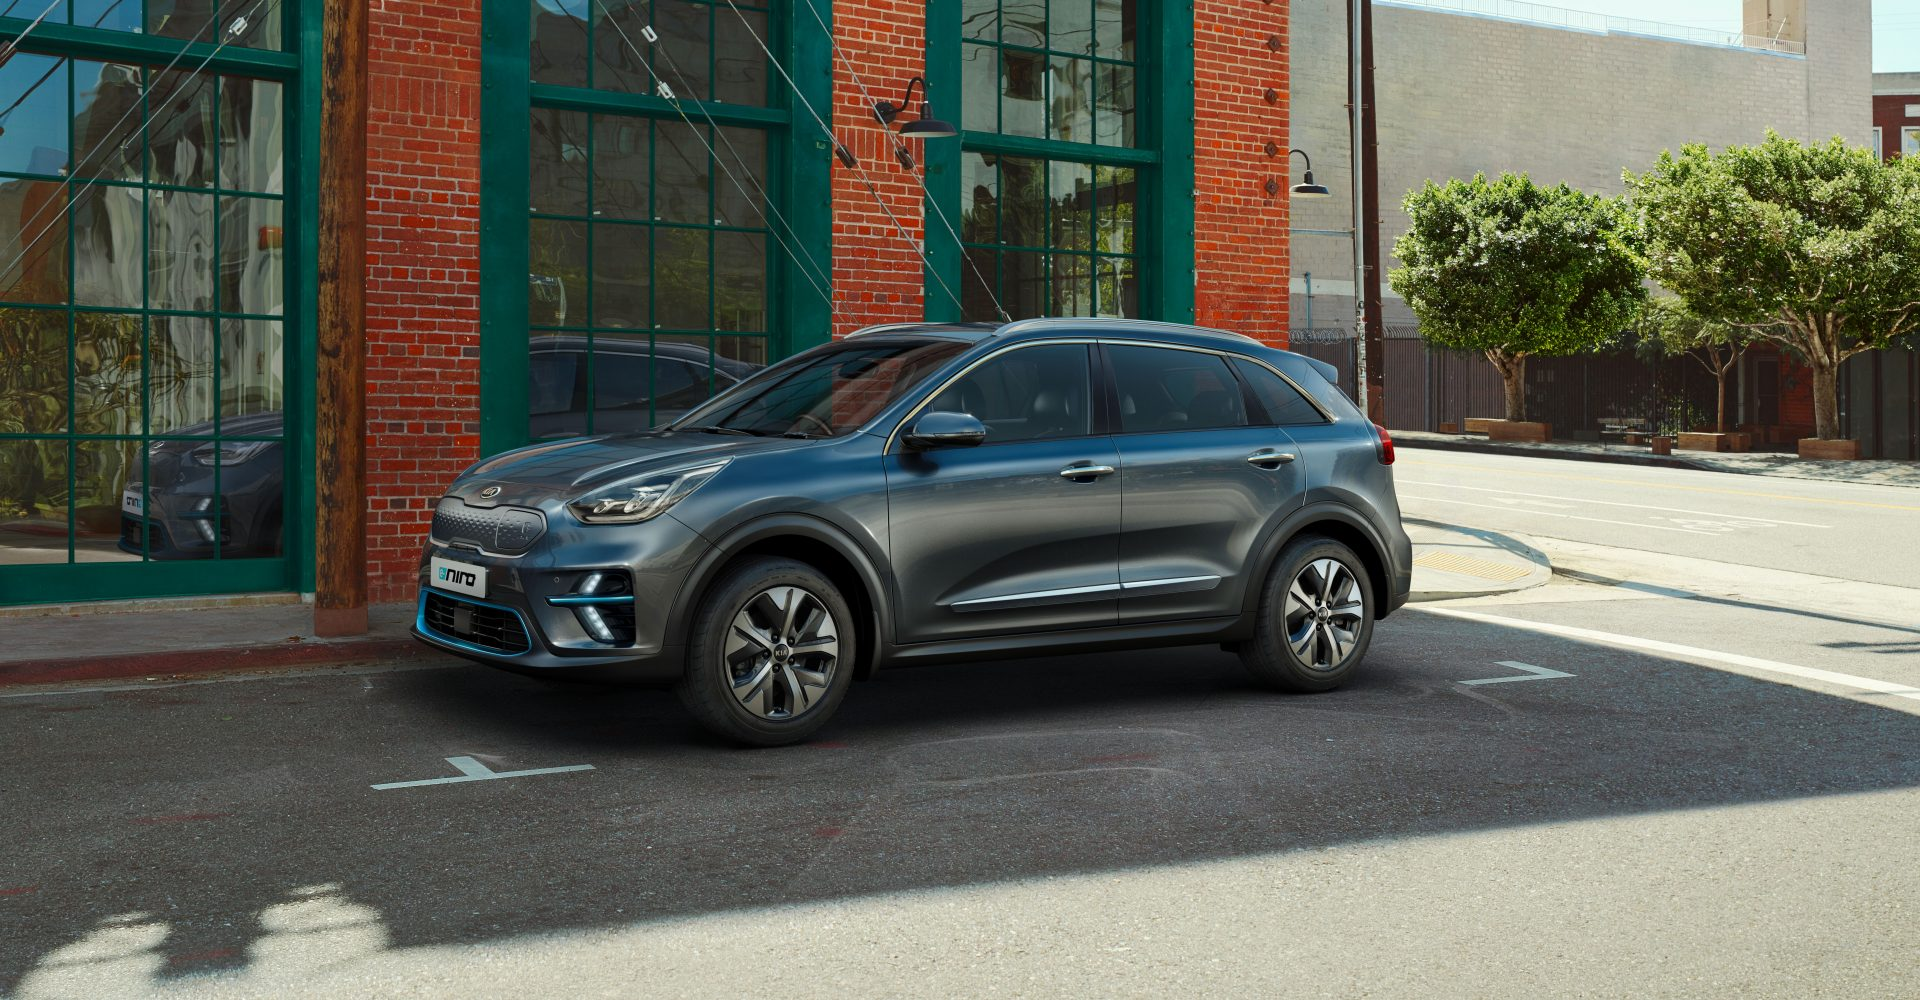 Kia introduces upgrades and supply increase for e-Niro ahead of 2020